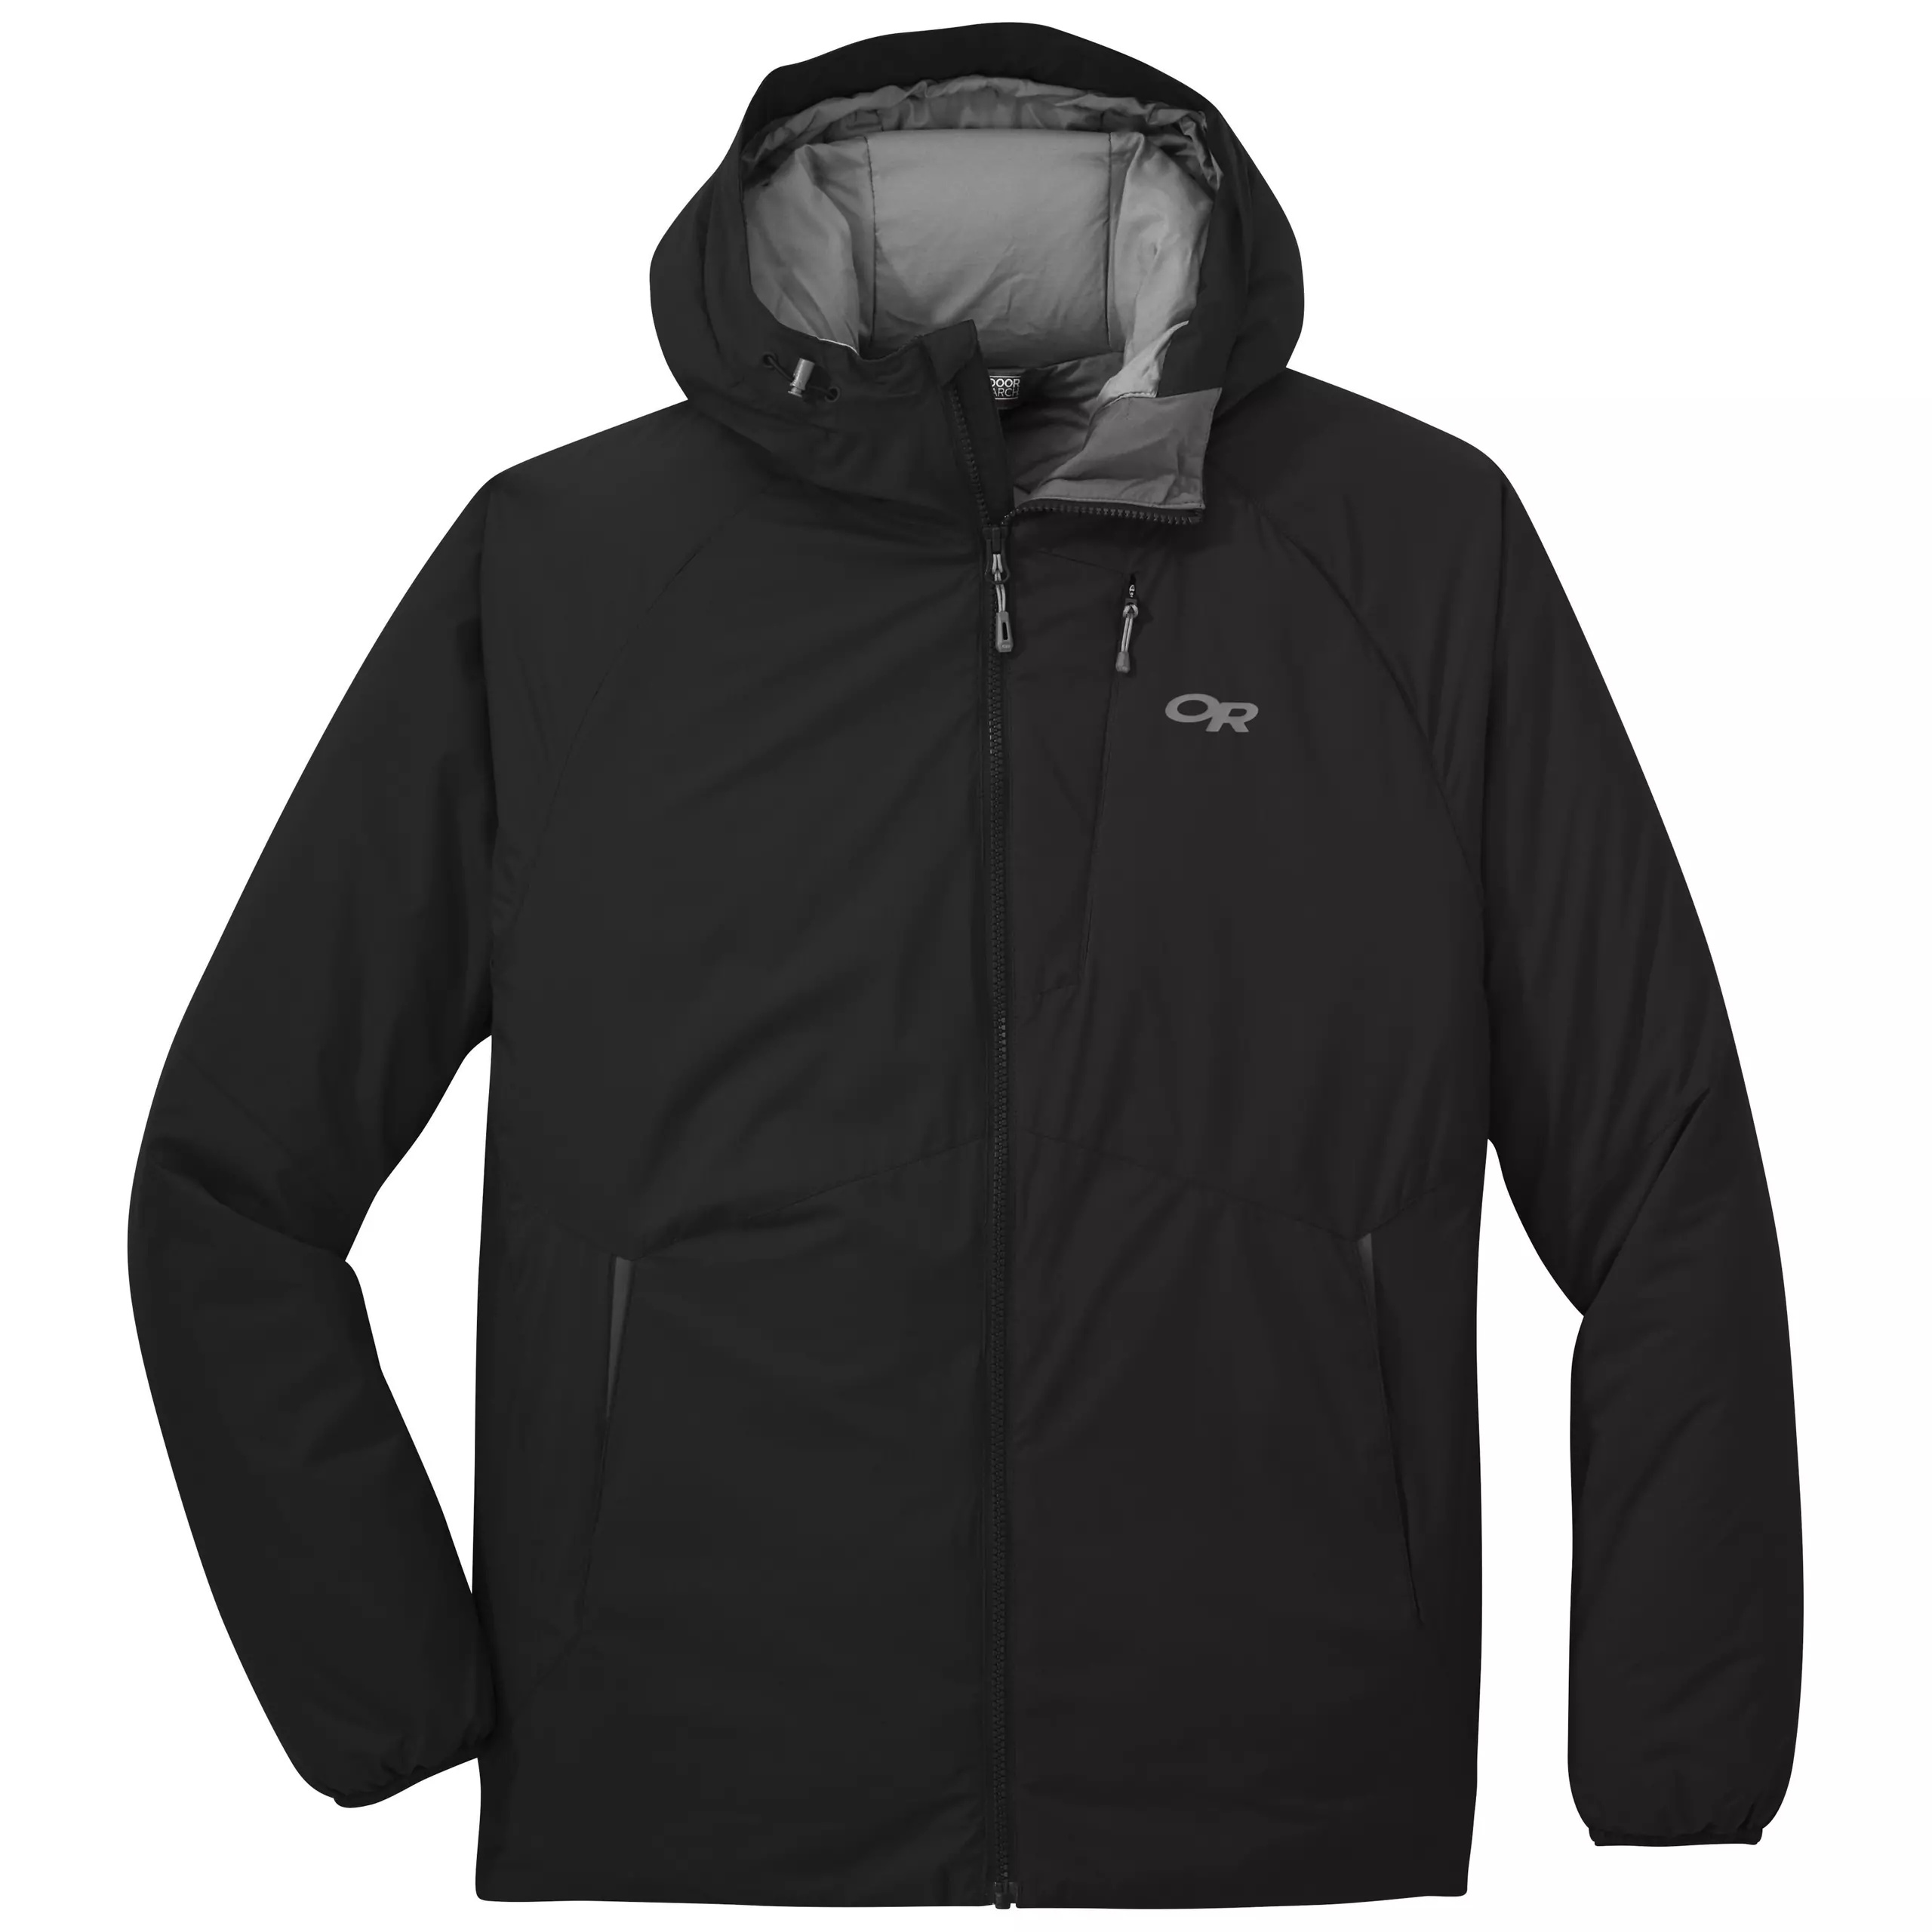 Refuge Hooded Jacket - Men's